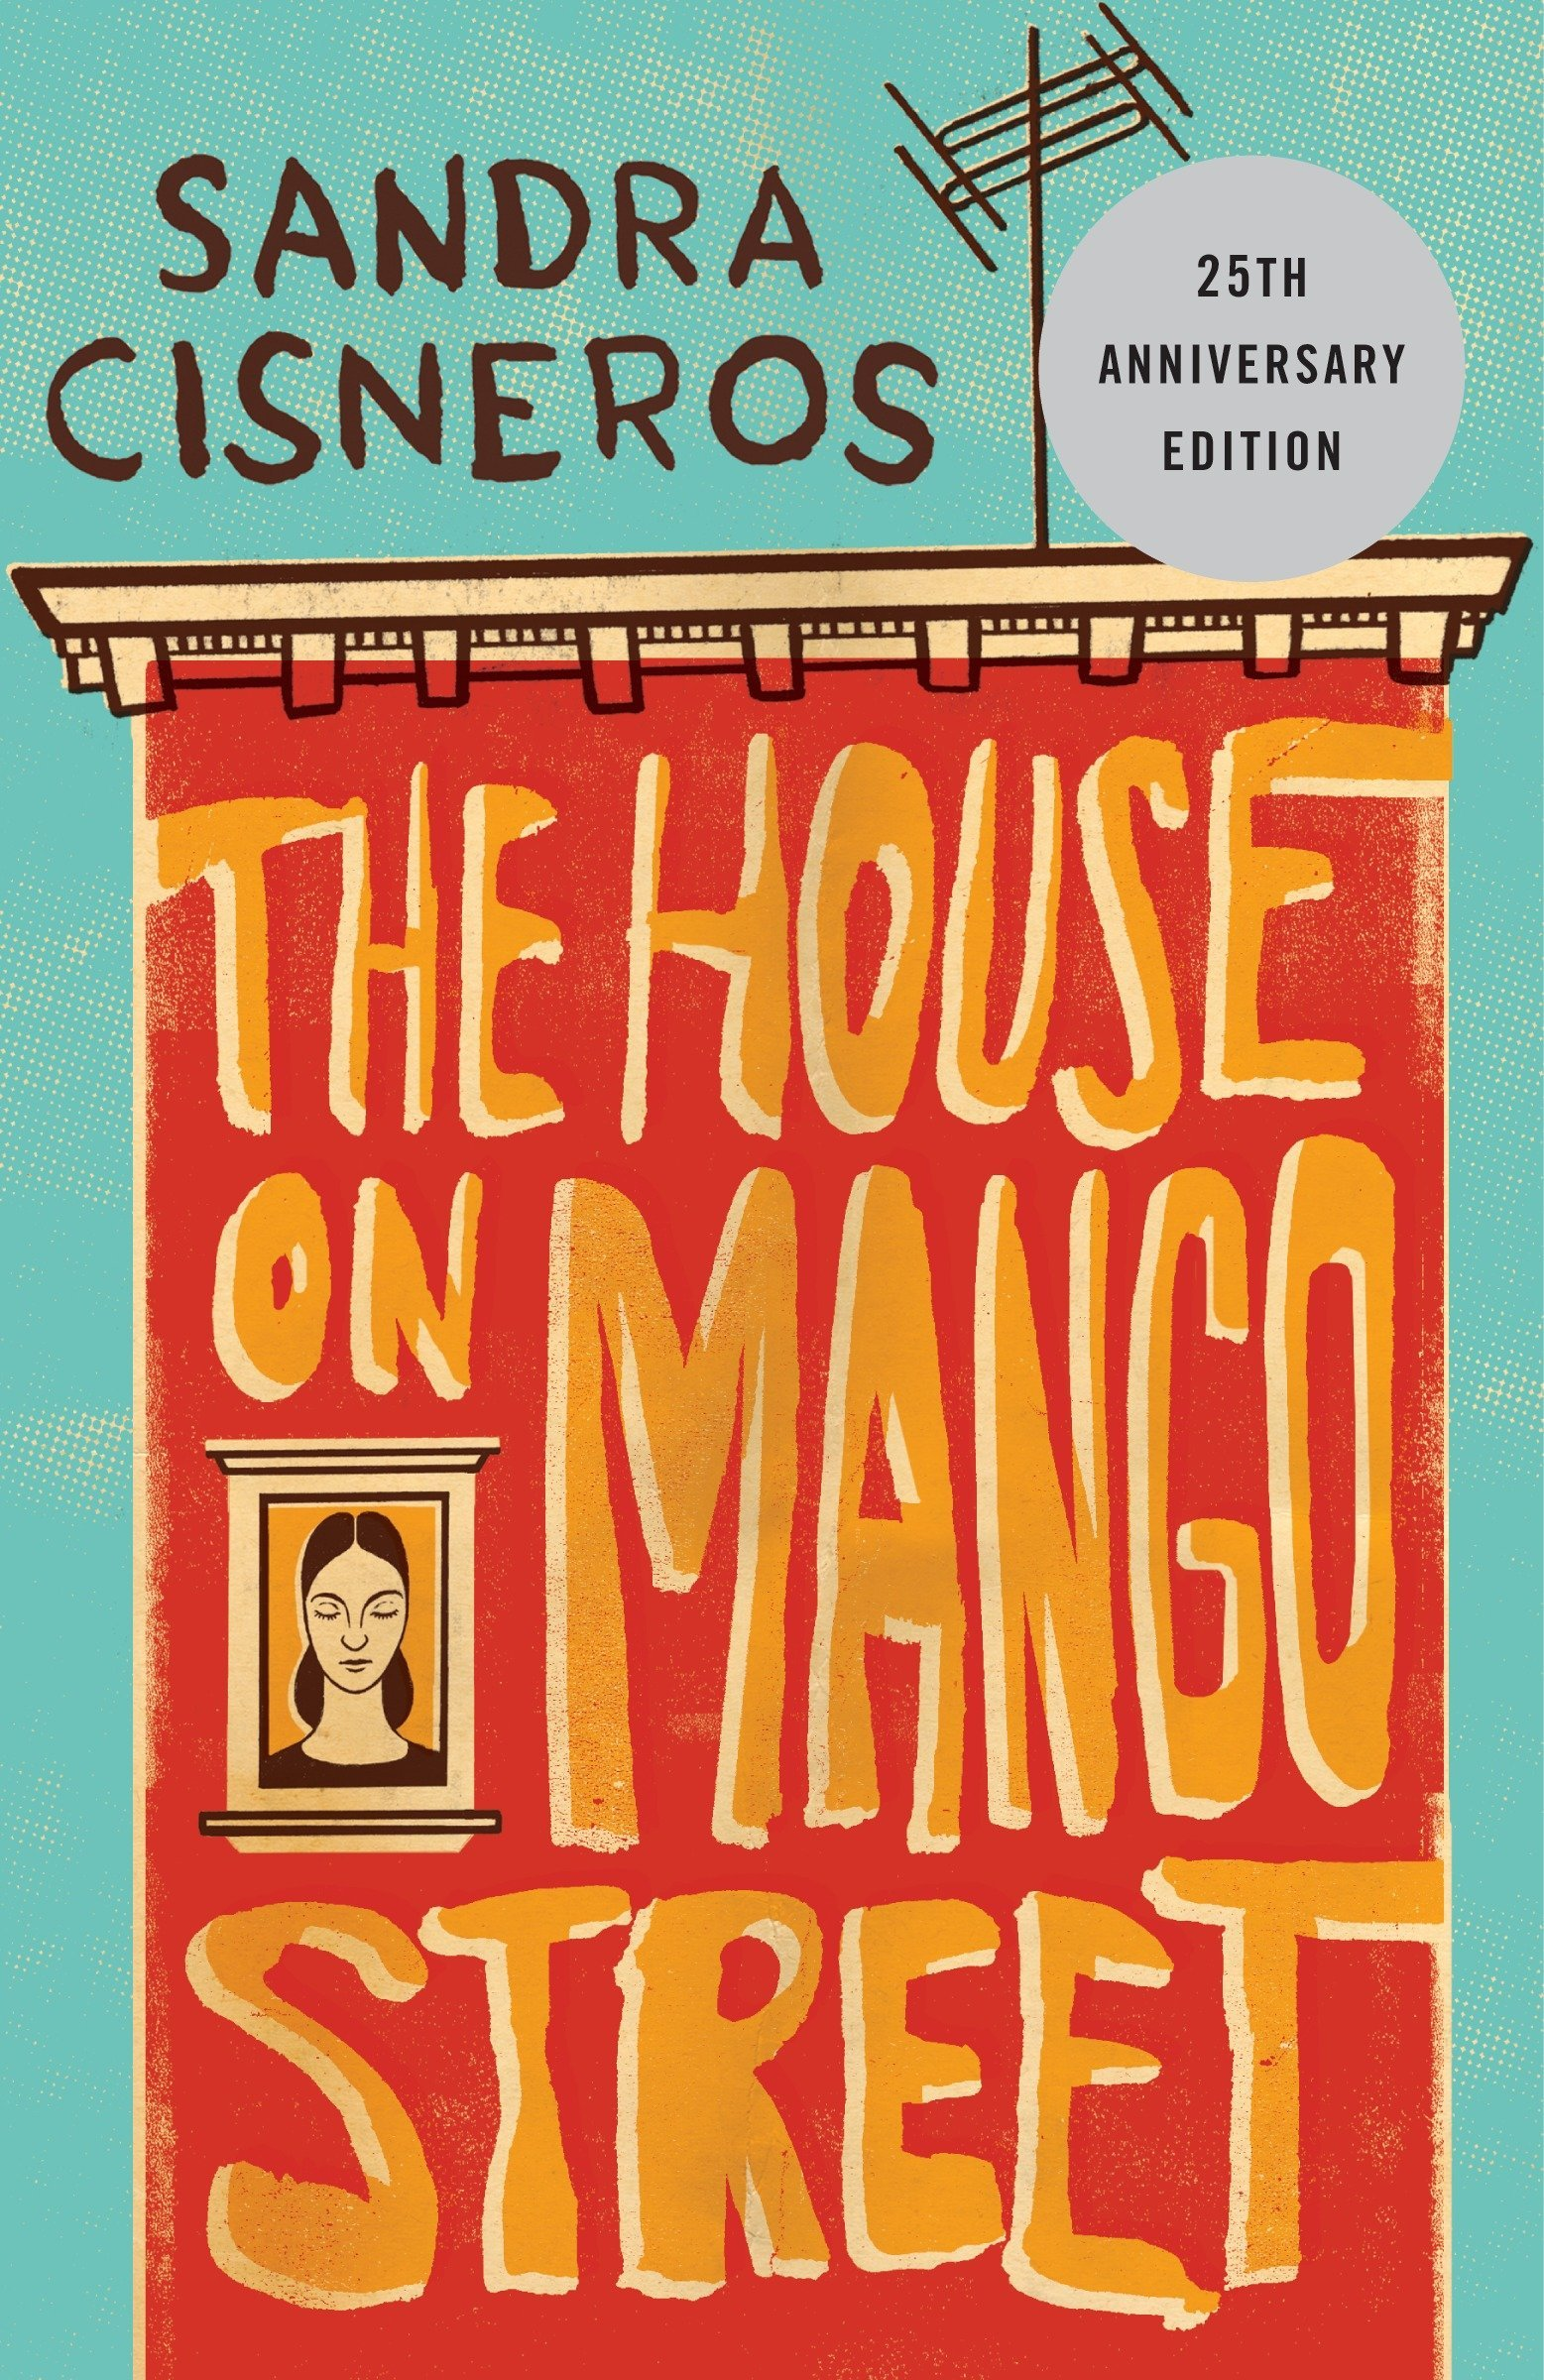 Image result for the house on mango street sandra cisneros